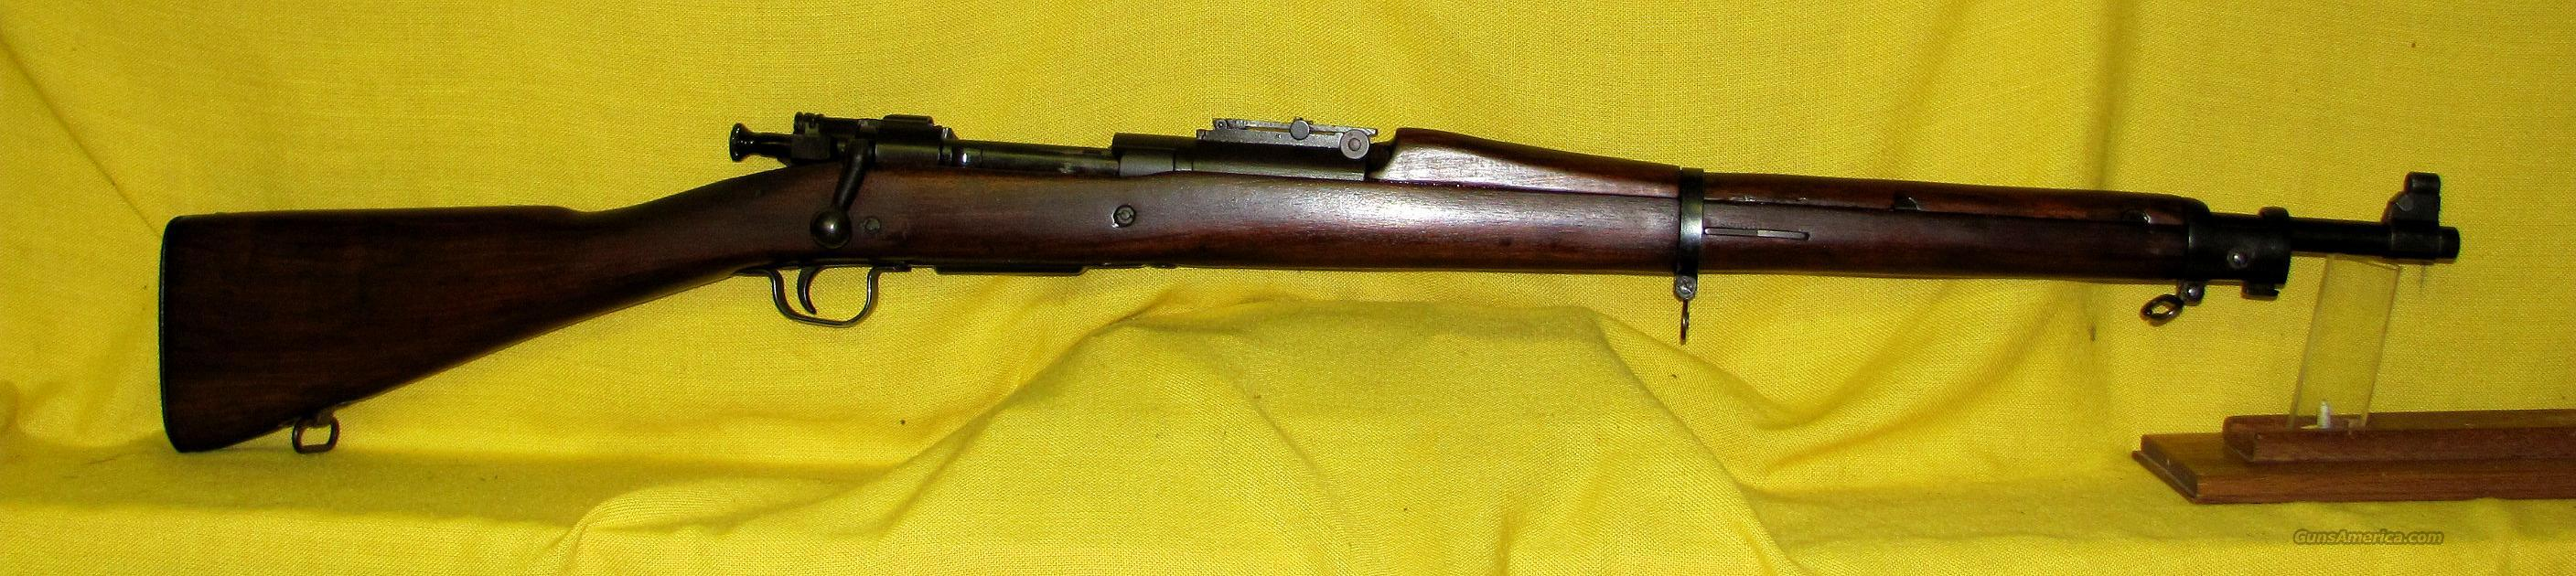 "SPRINGFIELD 1903A3  24""BBL WWII   Guns > Rifles > Military Misc. Rifles US > 1903 Springfield/Variants"